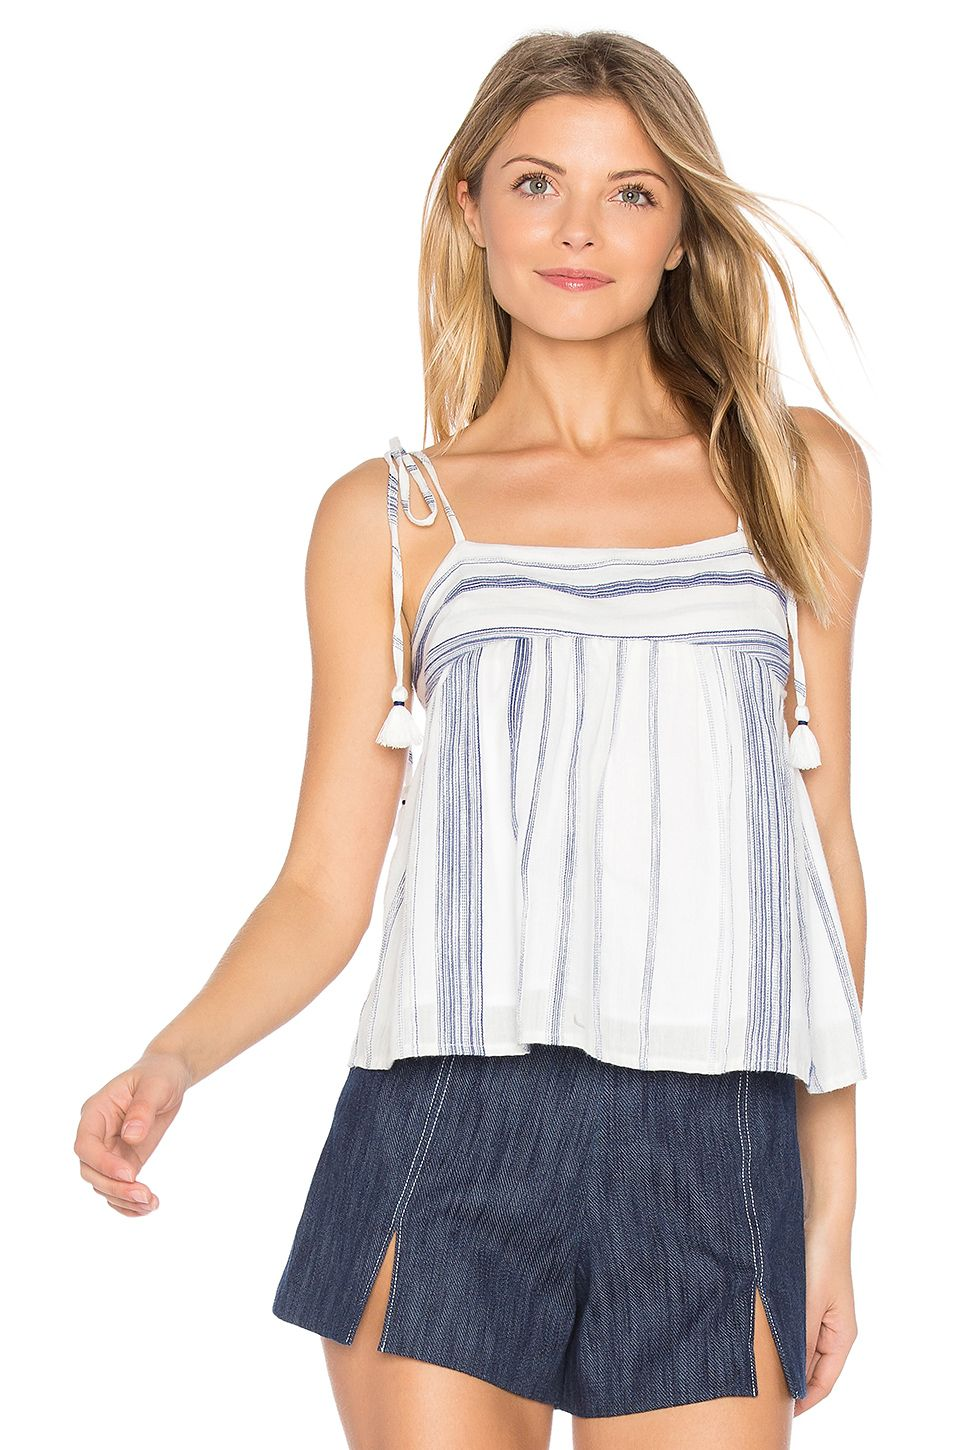 aa6b487be040 J.O.A. Stripe Tie Shoulder Top in Navy & White Stripe | I want ...